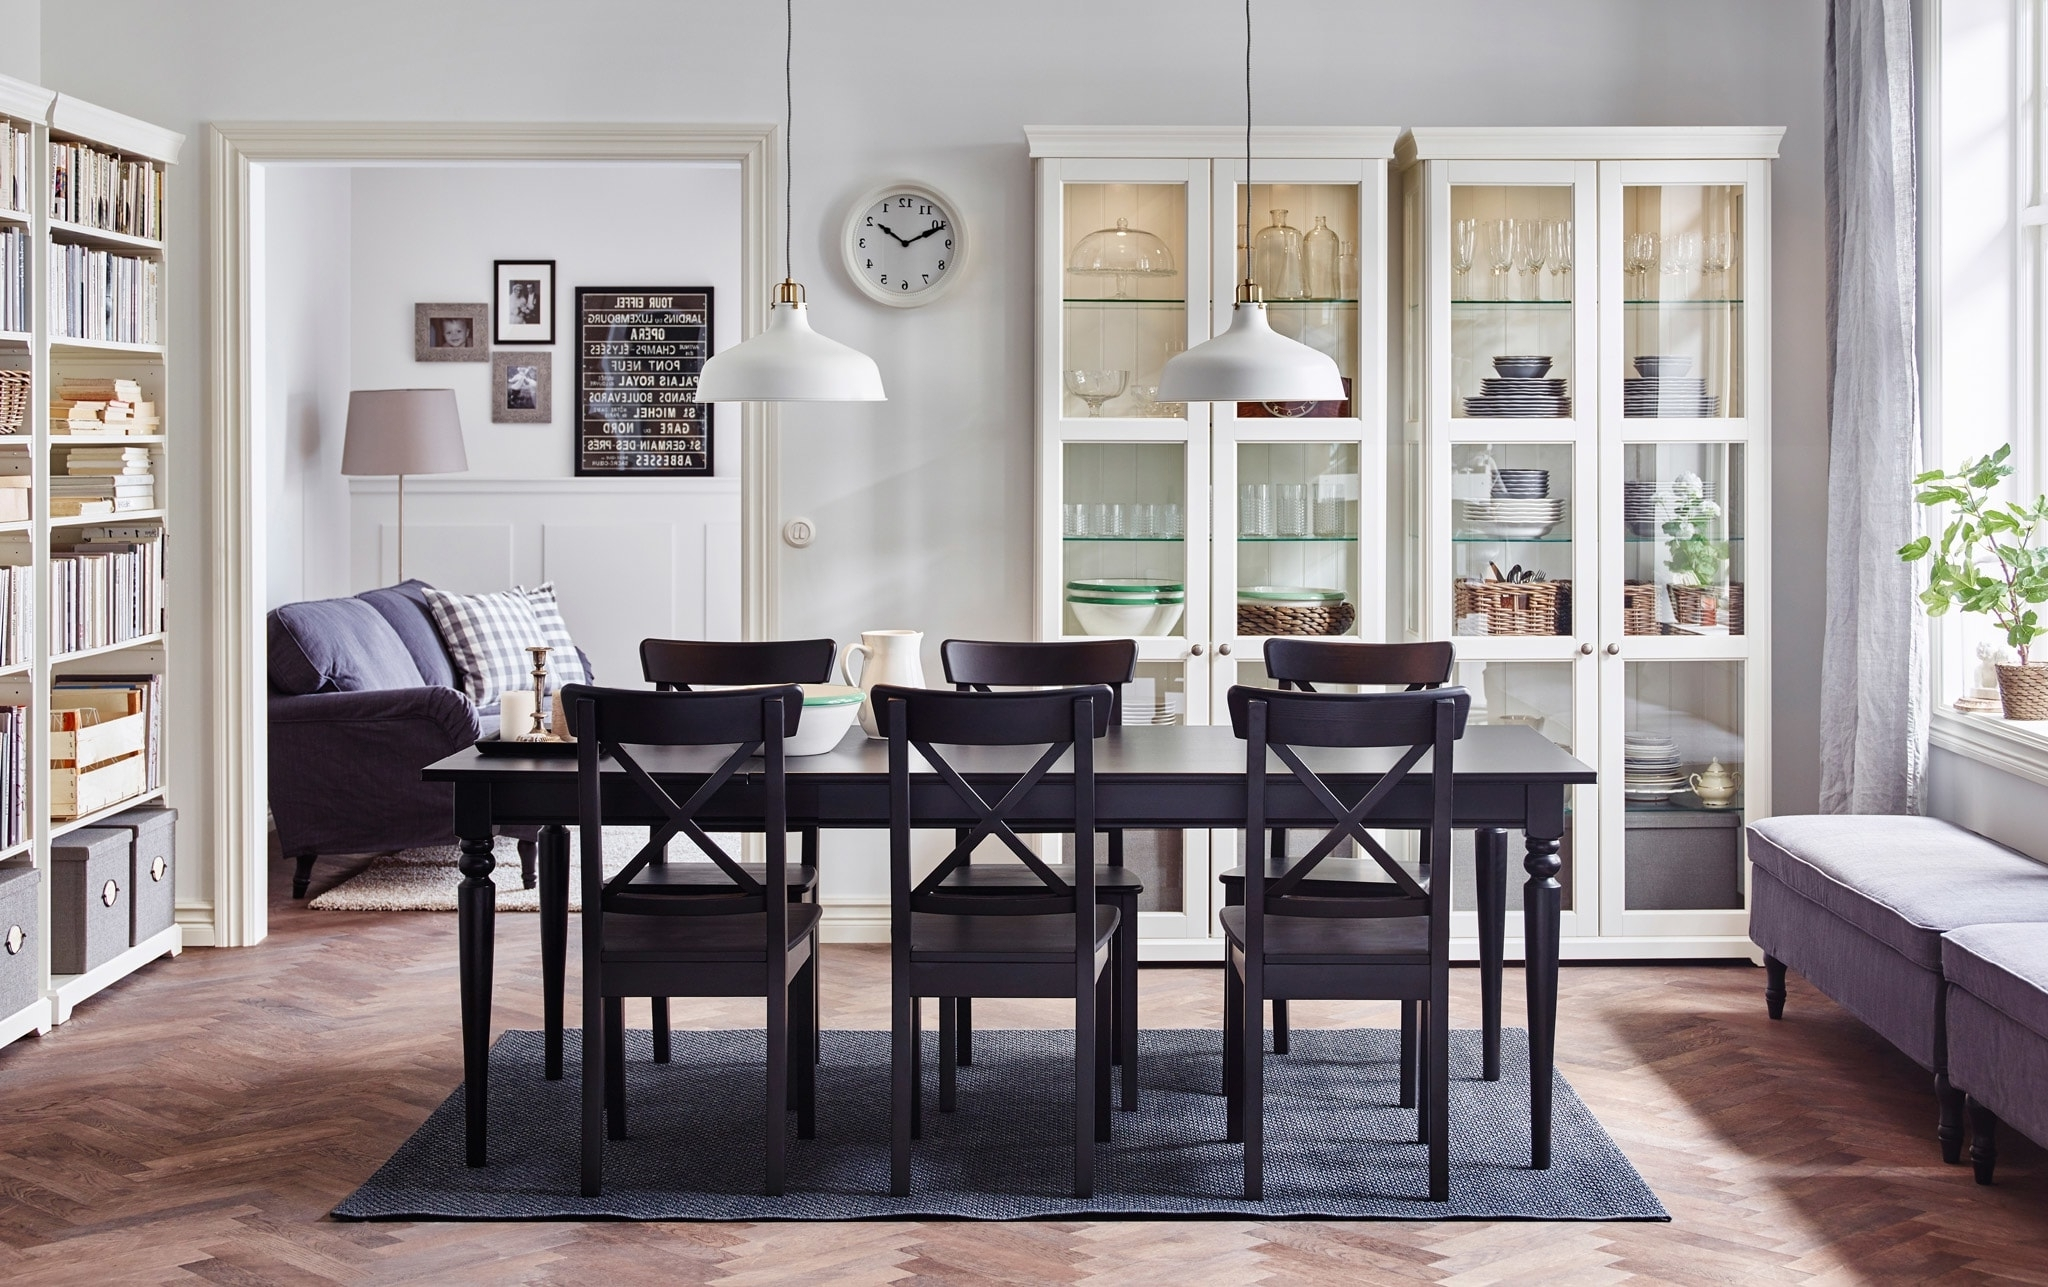 Widely Used Black Extendable Dining Tables And Chairs With Regard To Dining Room Furniture & Ideas (View 5 of 25)